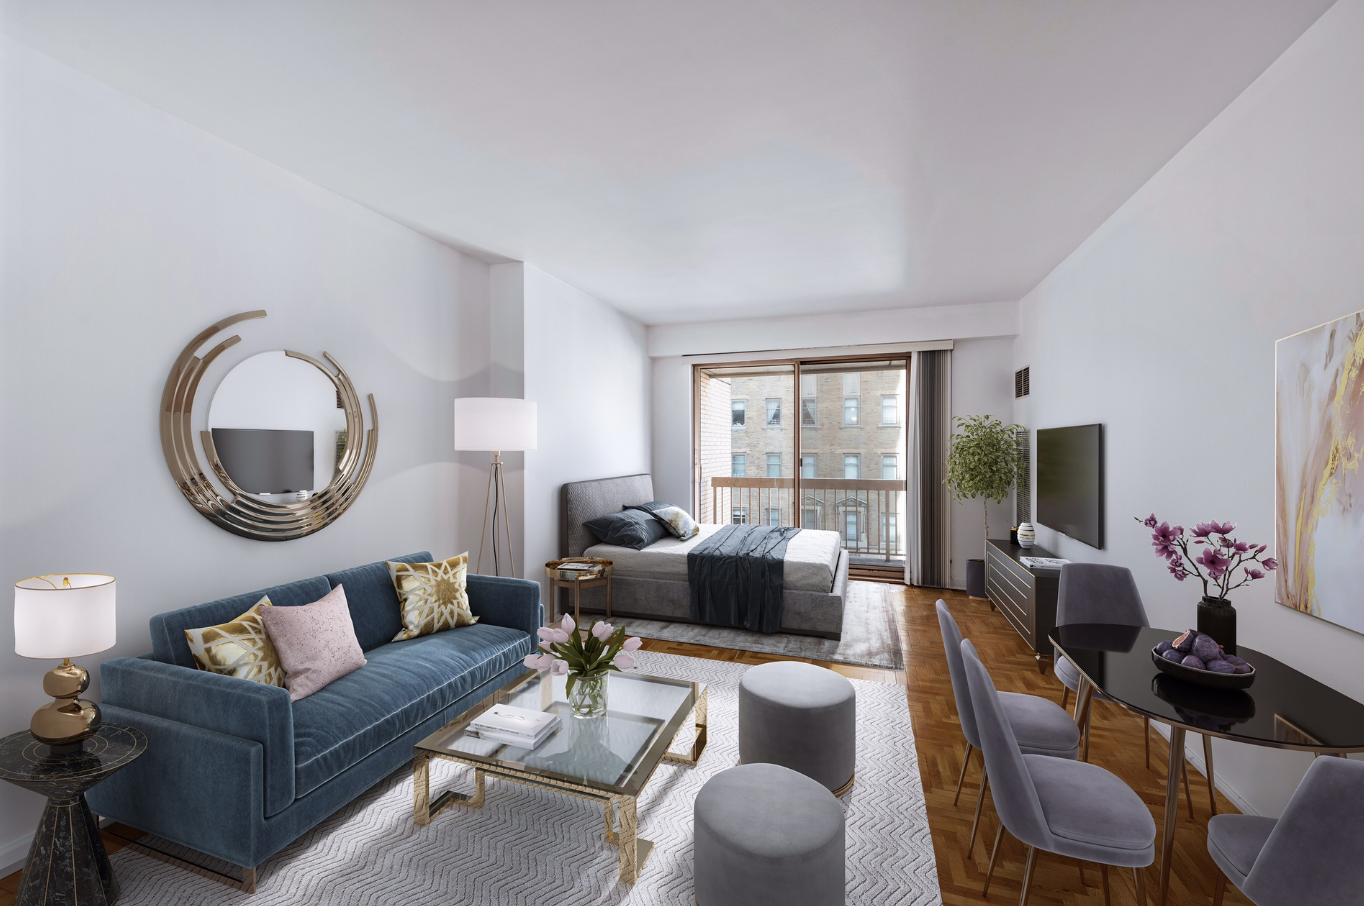 200 EAST 69TH STREET, 7E - $595,000 // Studio // 1 Bath // 500 SQFTAmazing Investment opportunity for this spacious condo studio in the heart of the Upper East Side. Move right in, use as pied-a-terre, or sublet for investment.